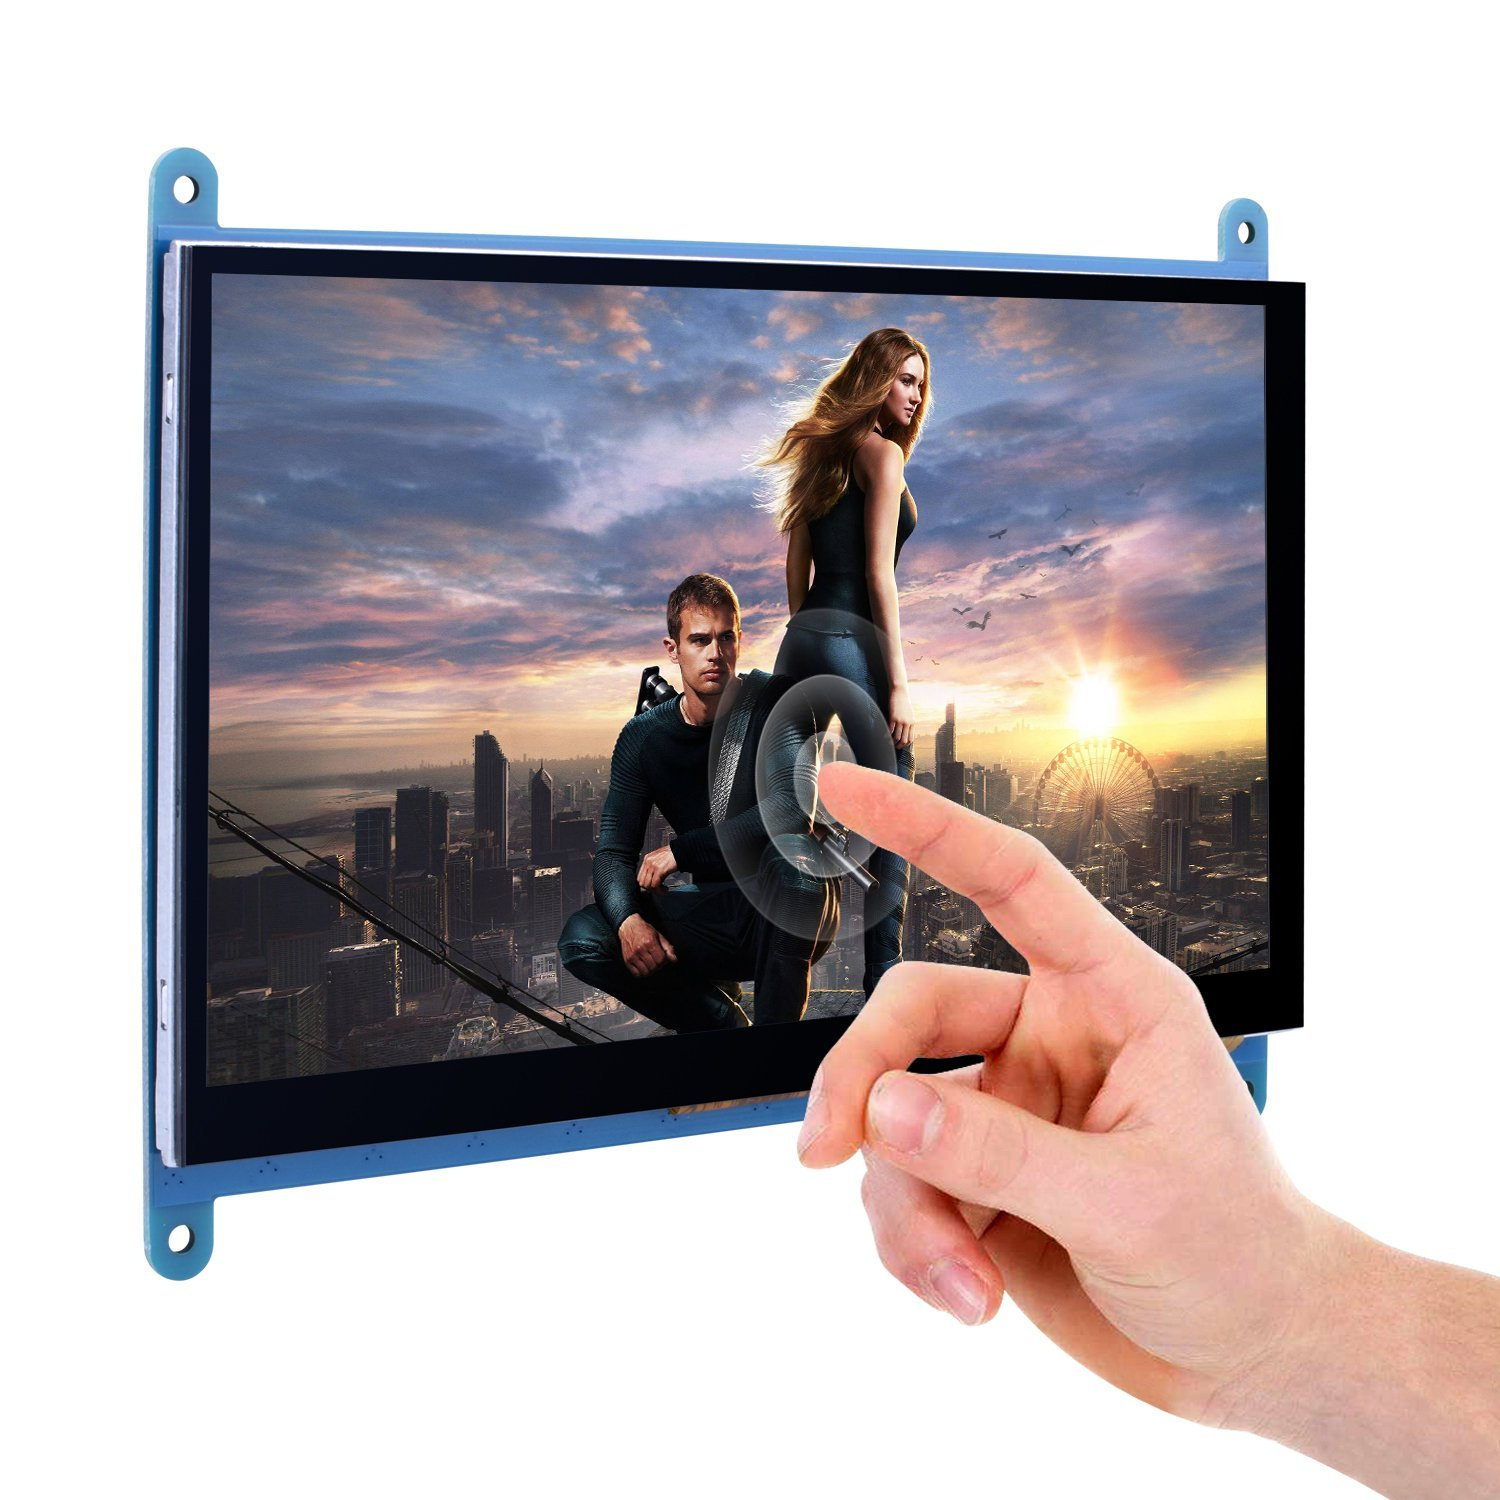 BLEL Hot 7 Inch Capacitive Touch Screen TFT LCD Display HDMI Module 800x480 for Raspberry Pi